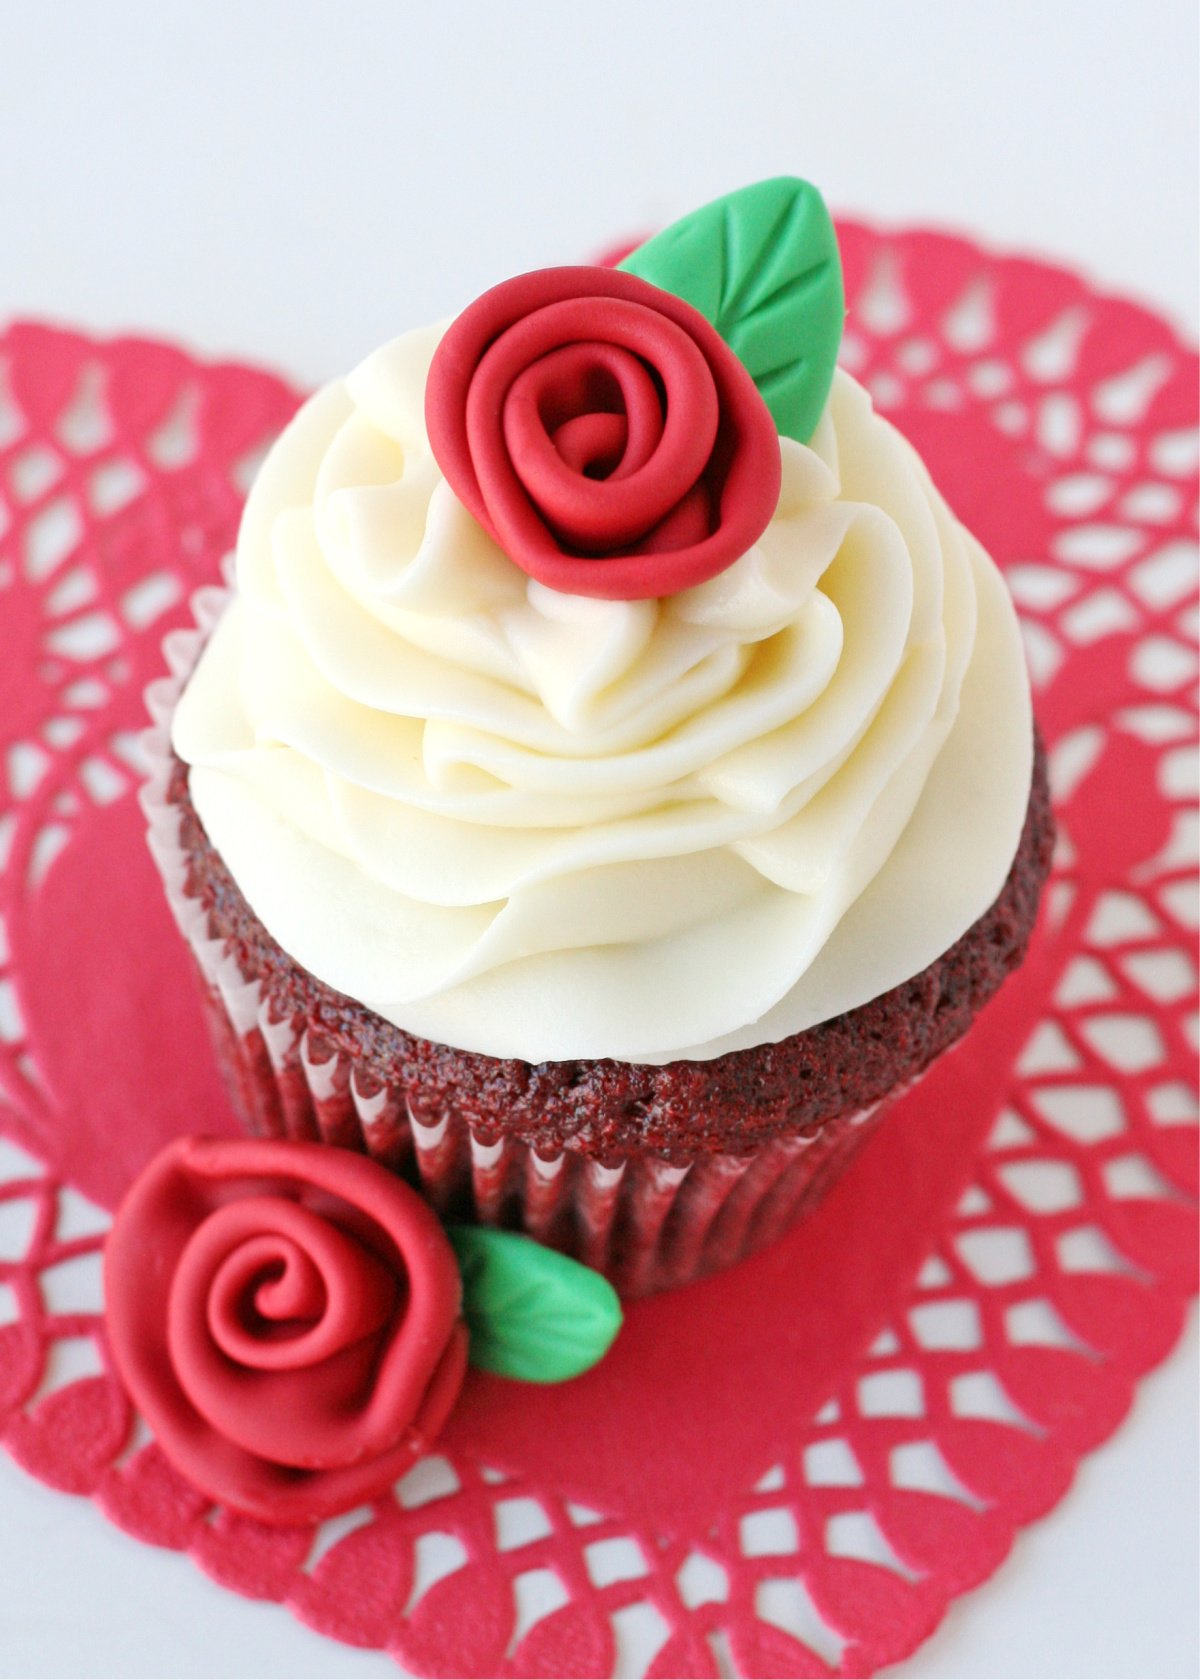 red velvet cupcakes on white background with red fondant roses